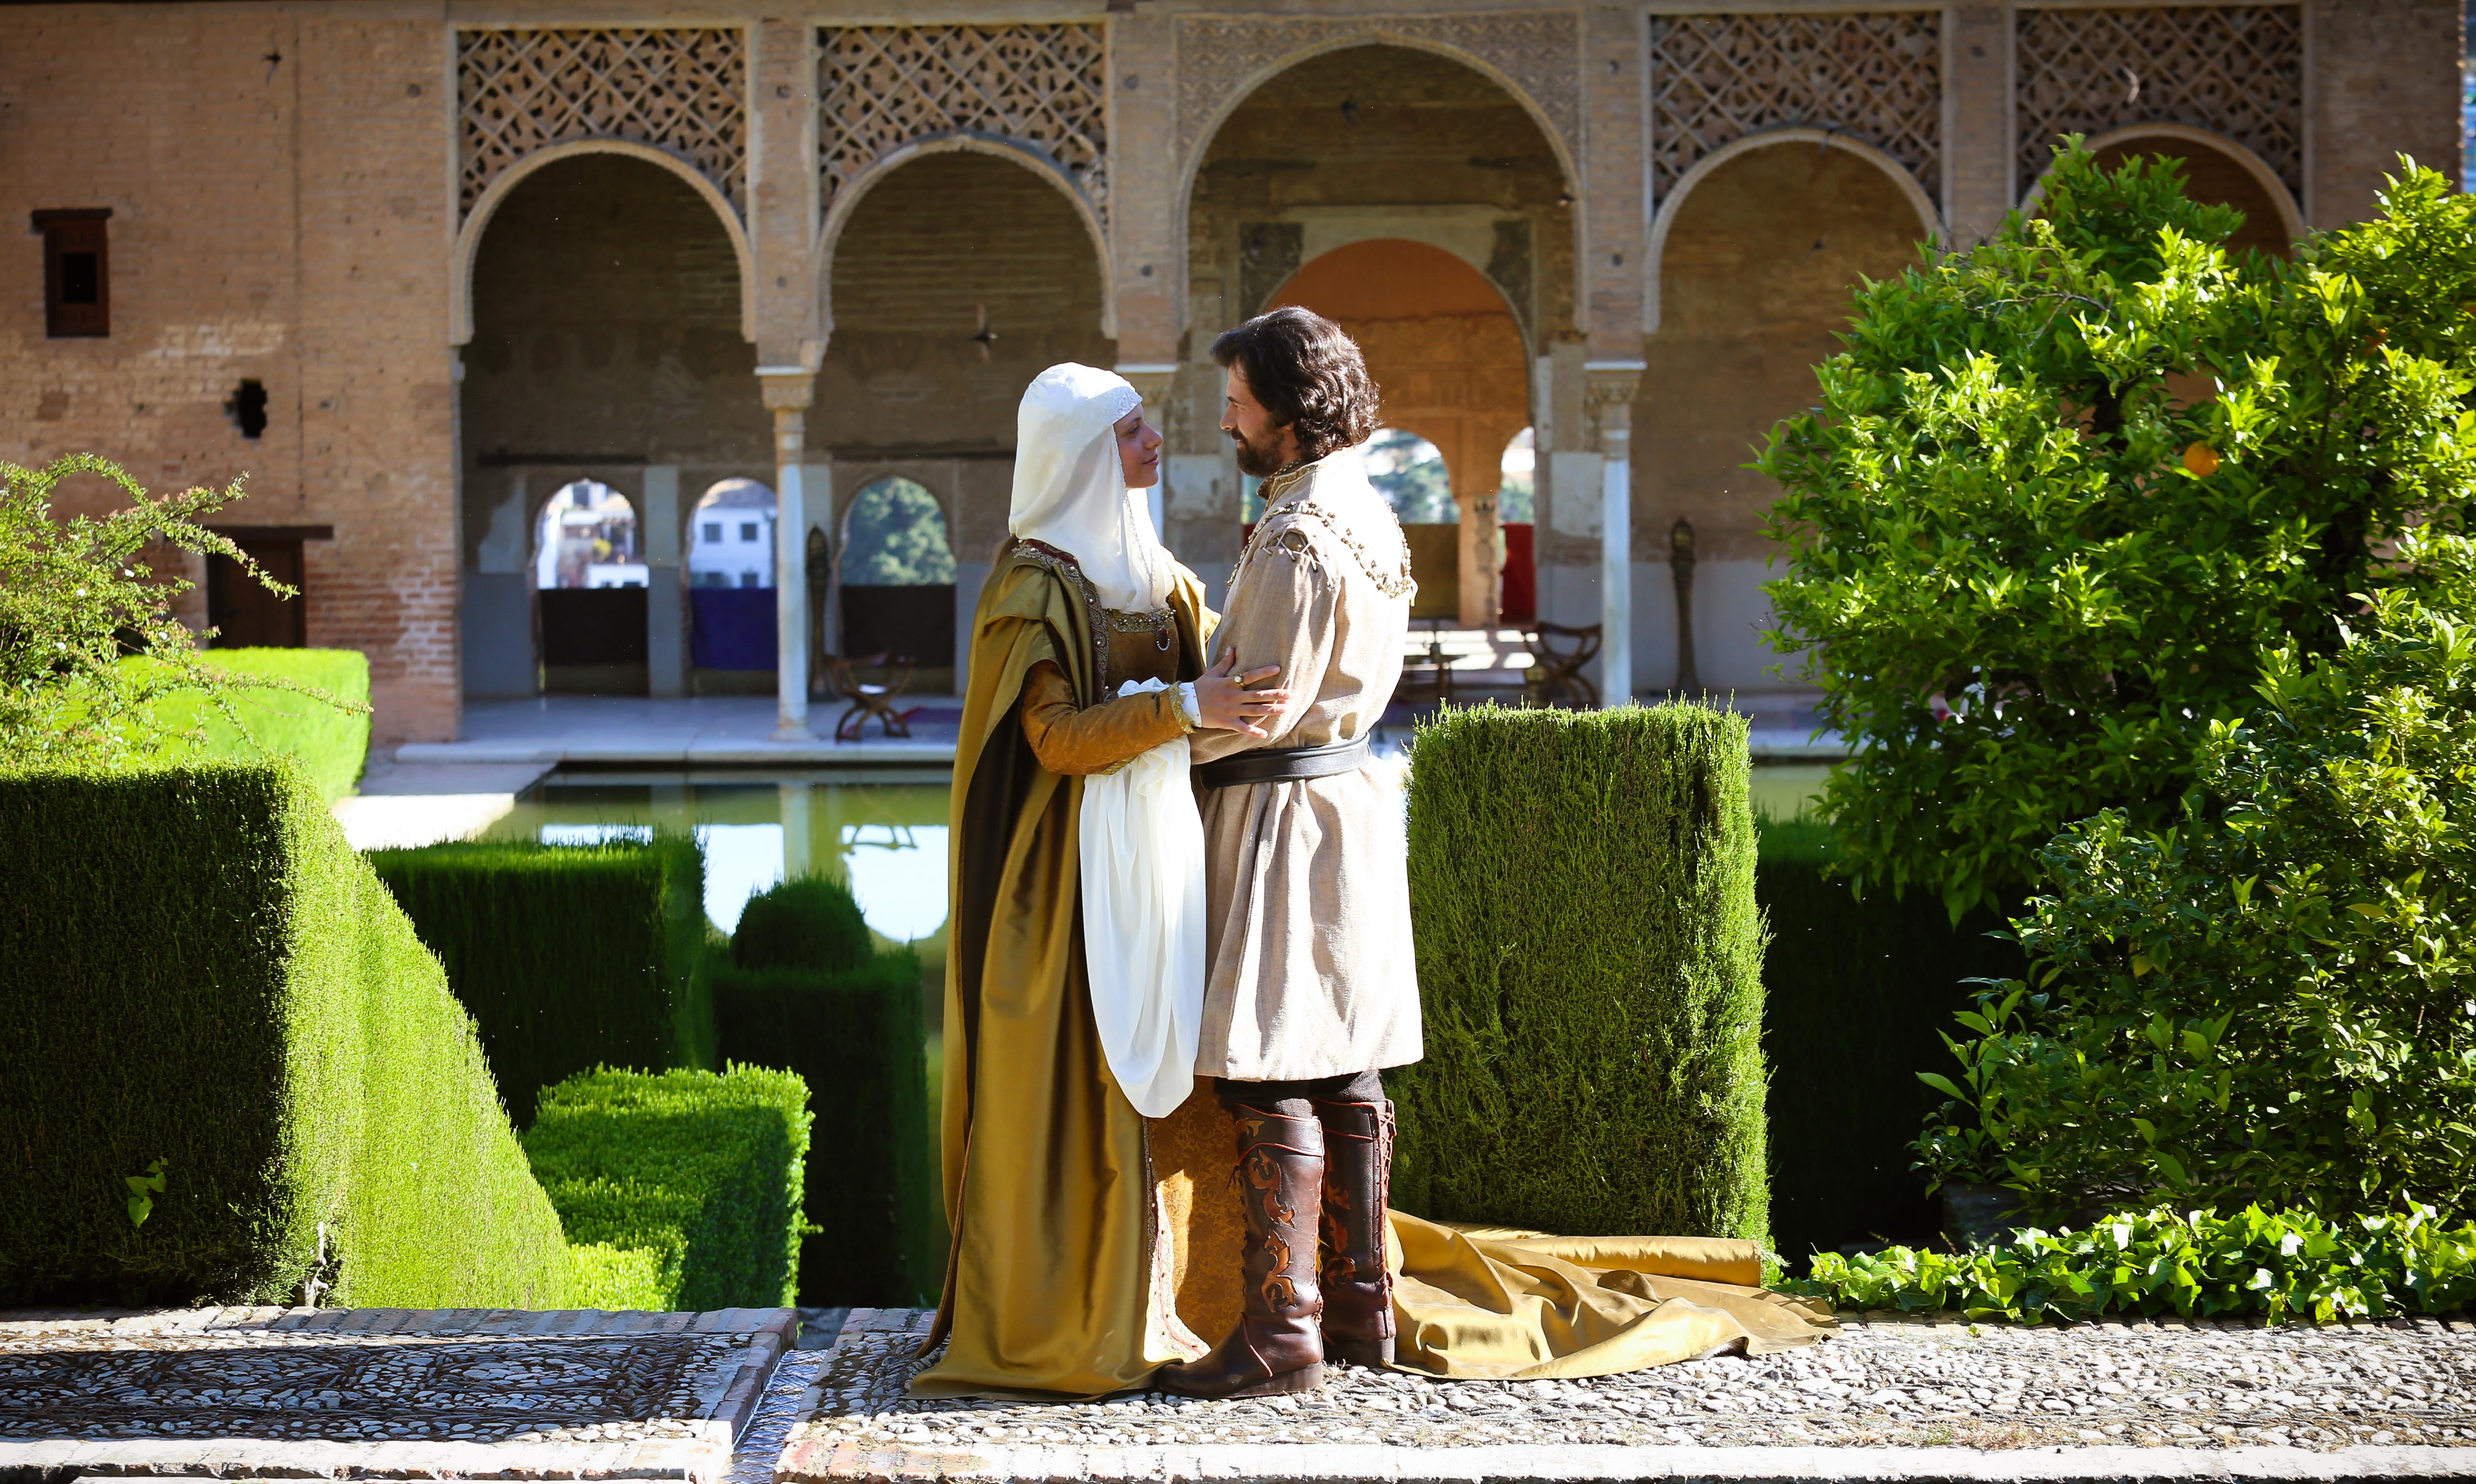 Isabella of Castile and Ferdinand of Aragon, love in the Alhambra